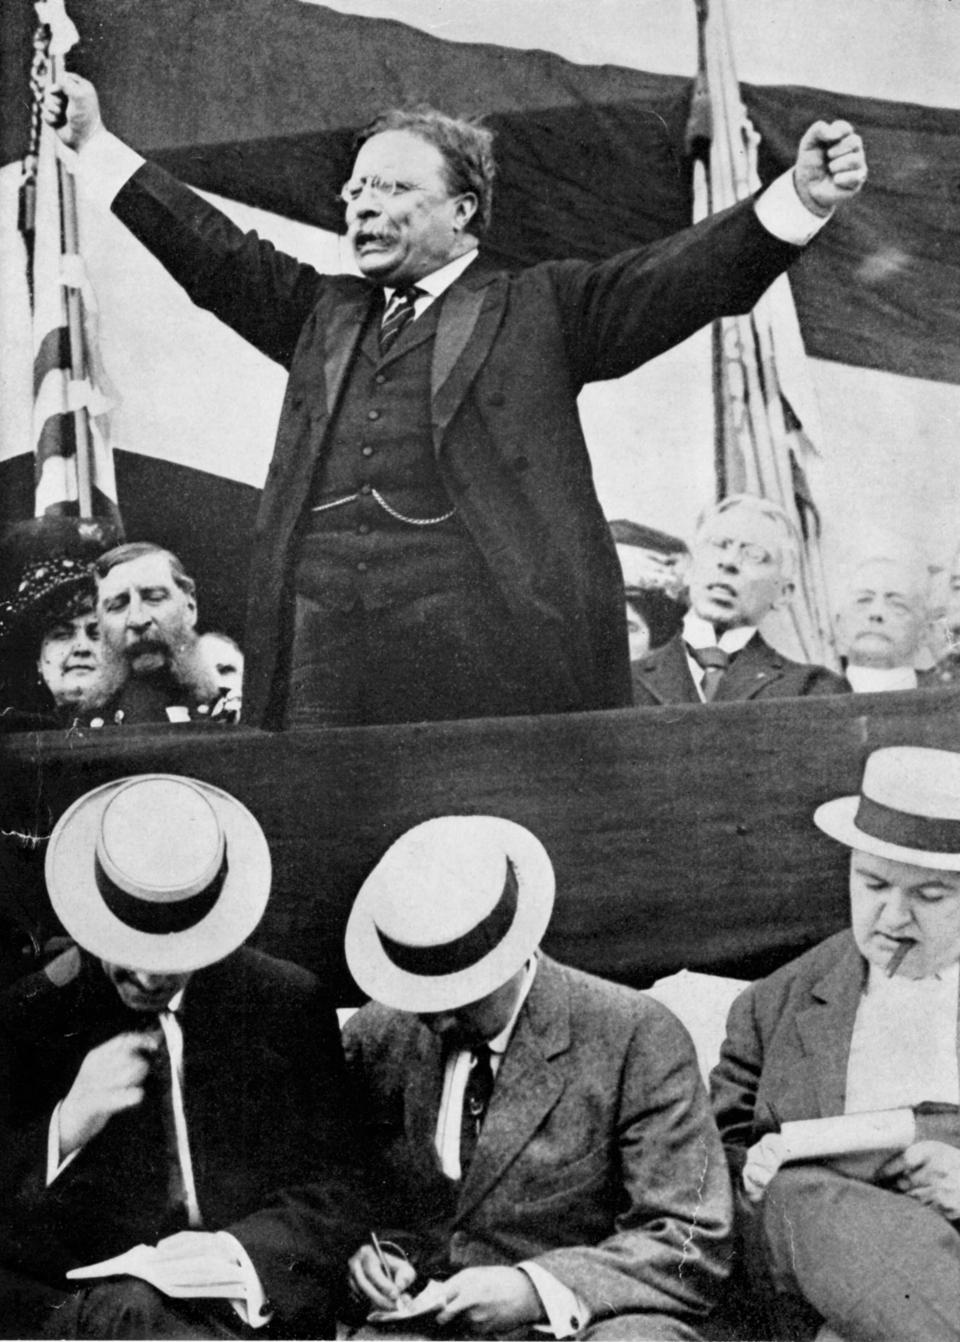 1912-2020: Presidents Who Changed Health Care In America